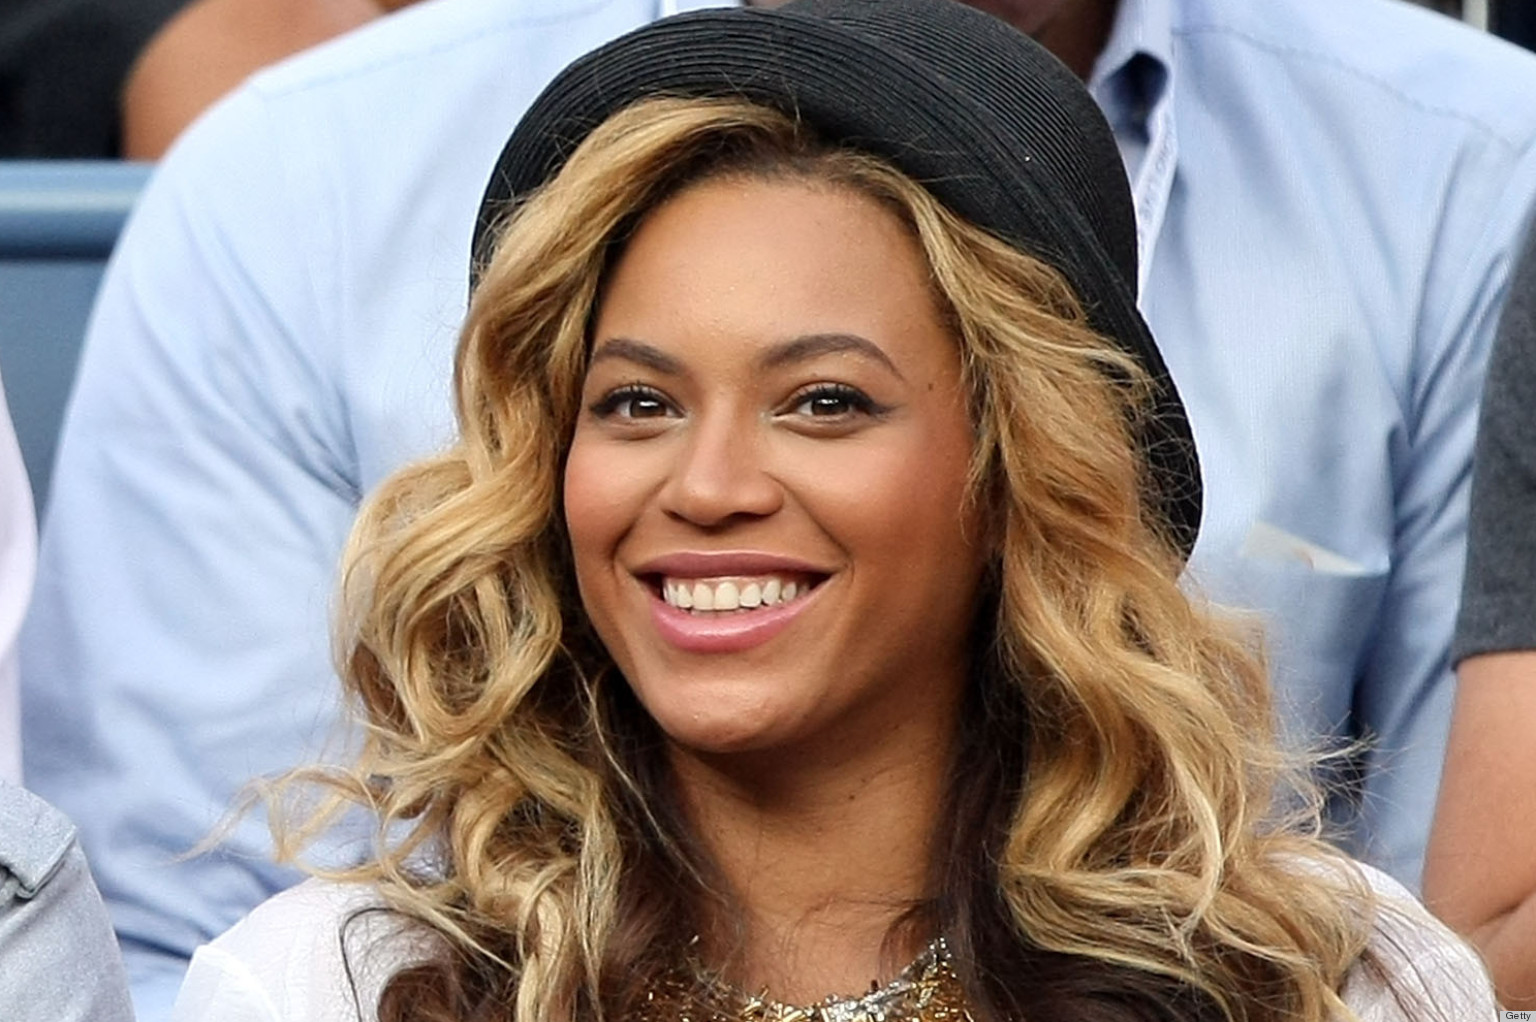 Beyonce's Maternity Wardrobe To Get Second Life With Another Baby?